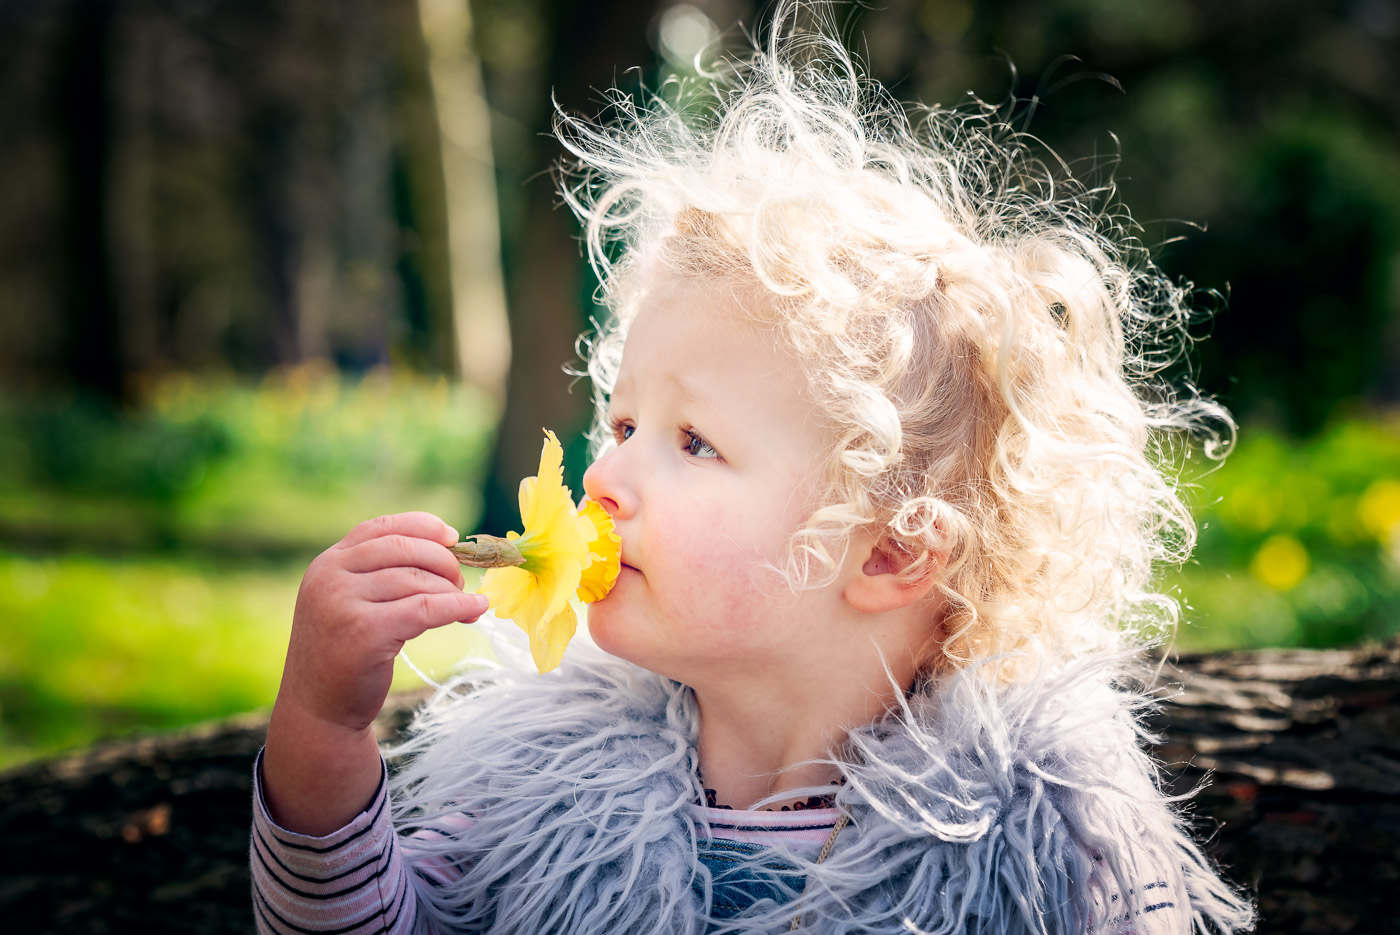 Bright close up portrait of a girl with curly hair, smelling the daffodils